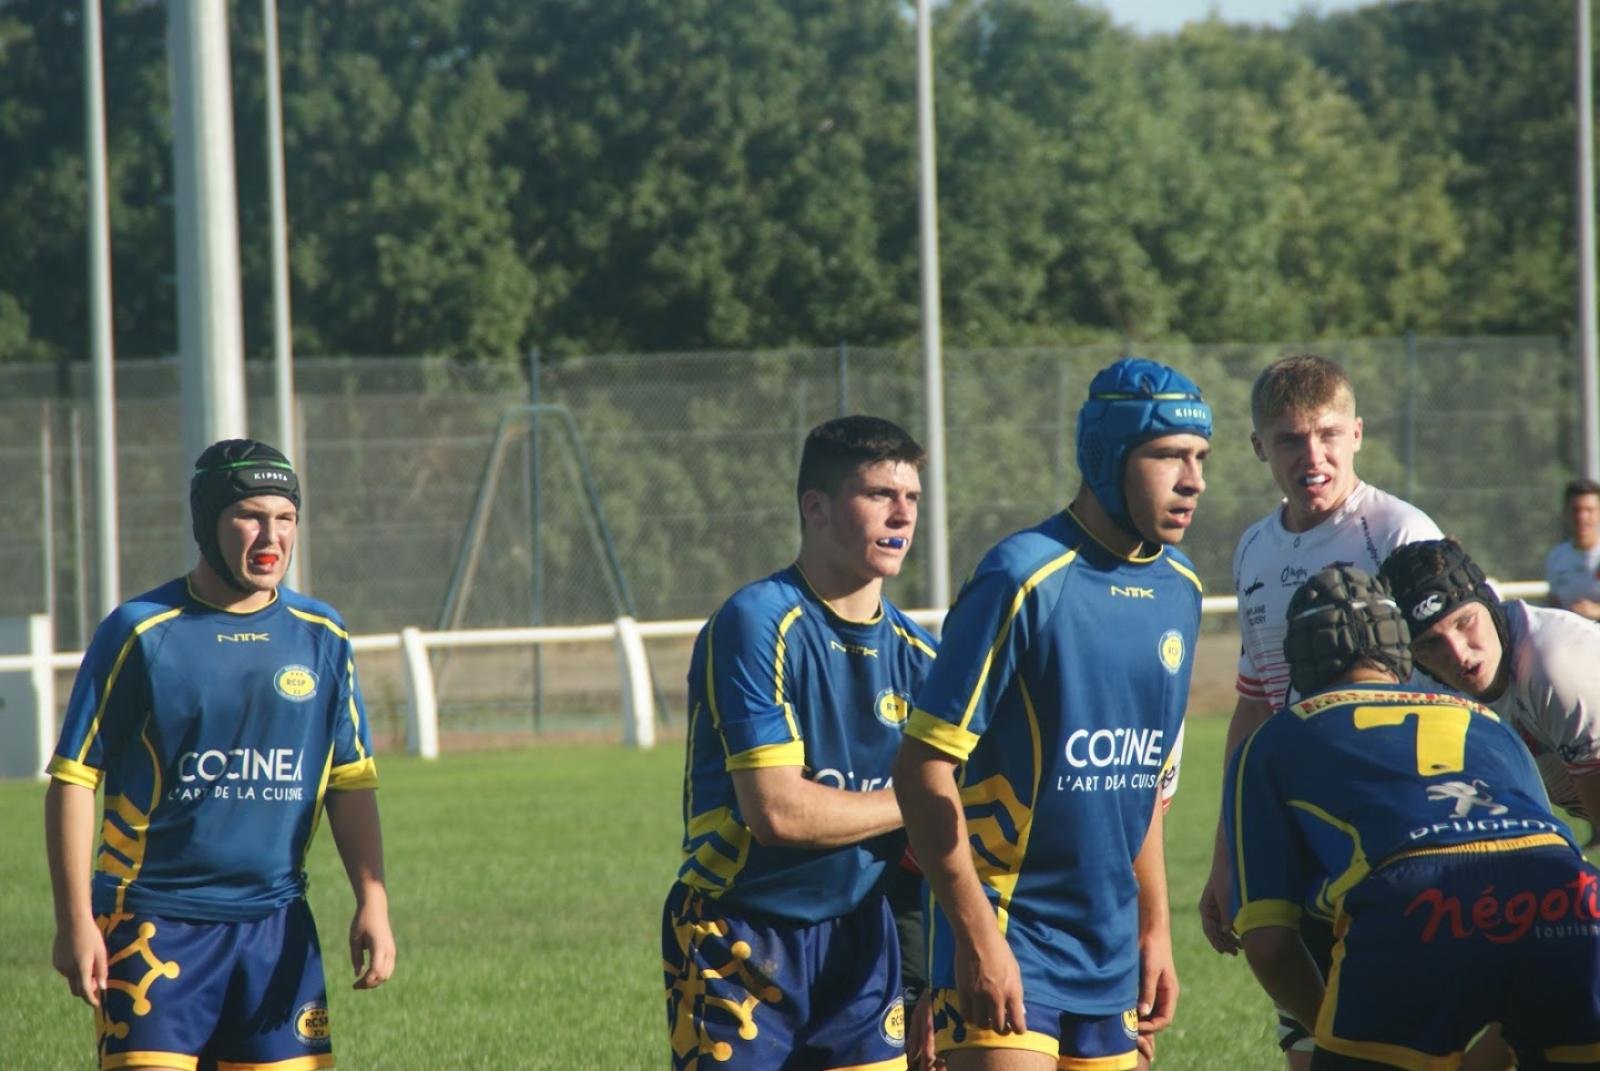 Match amical de reprise probant pour les Juniors